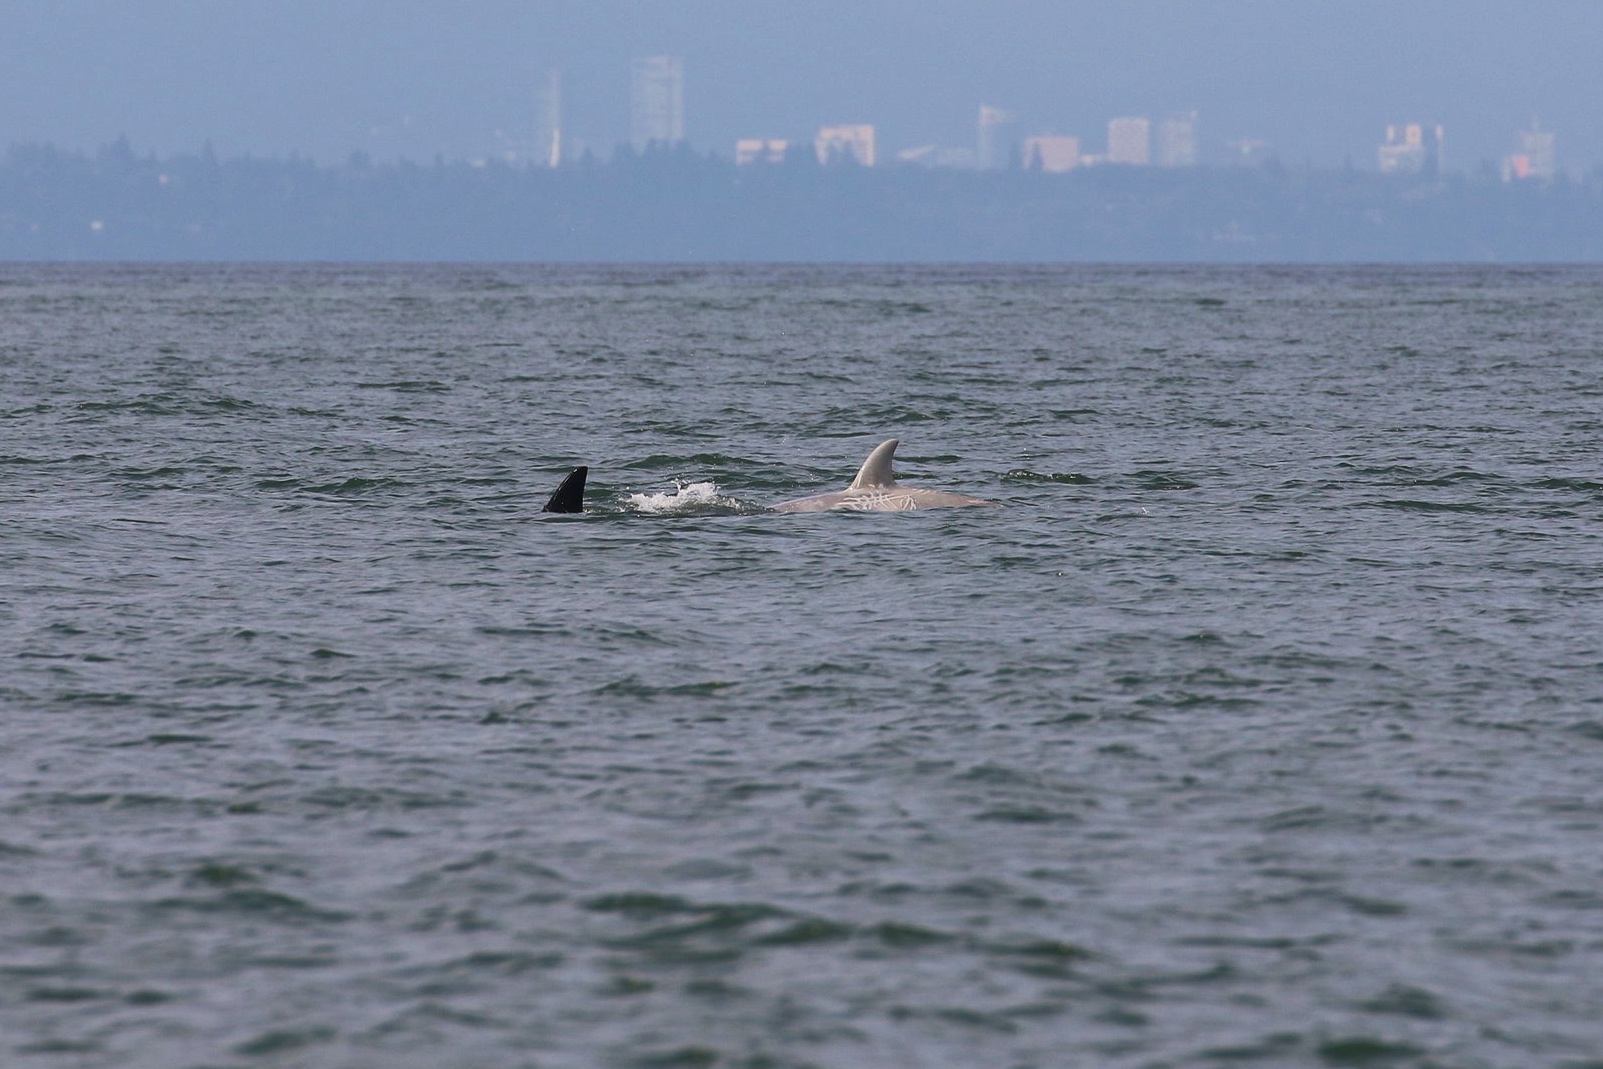 """T46B1B - """"Tl'uk"""" compared to a typical orca's colouring. Photo by Ryan Uslu (3:30)."""